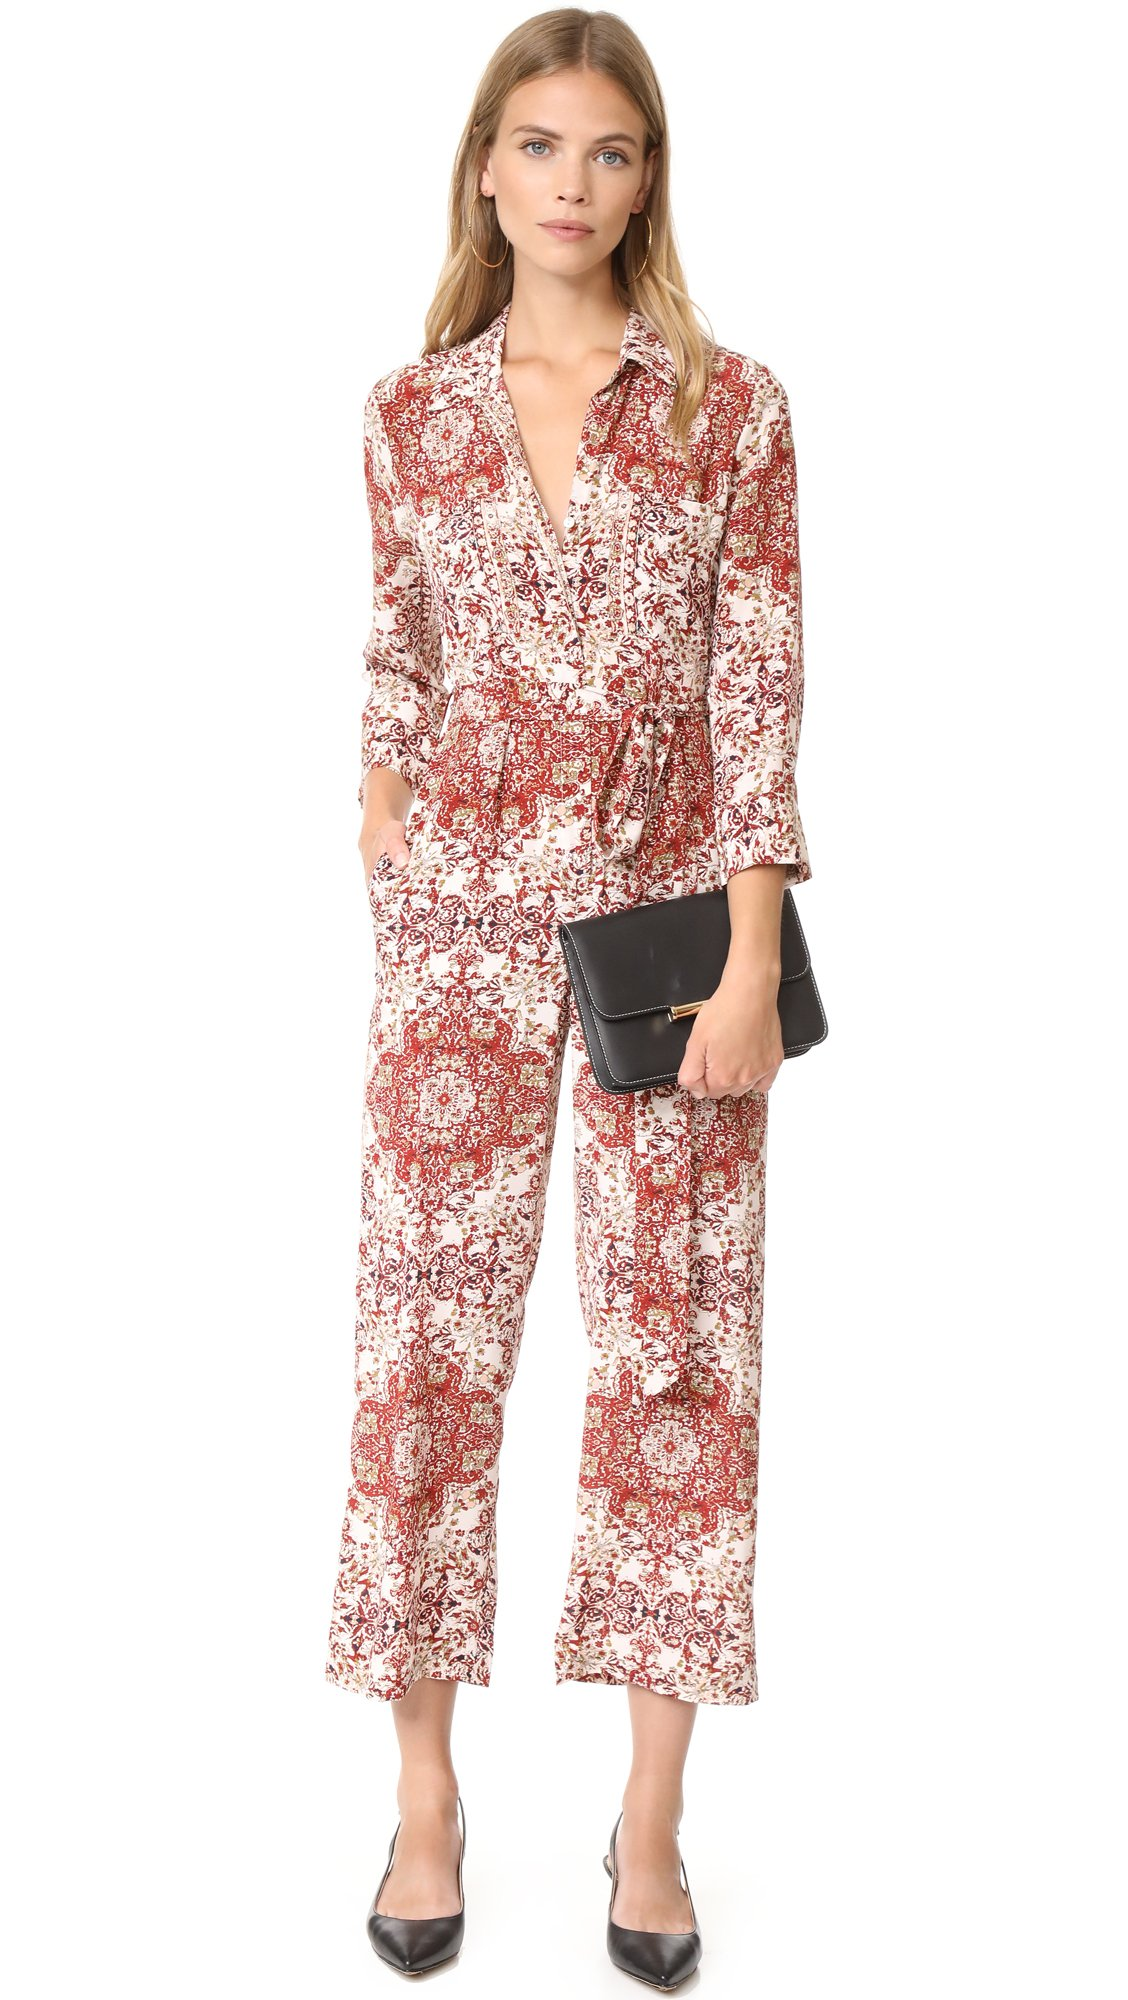 L'AGENCE Women's Delia 3/4 Sleeve Jumpsuit, Rhubarb Multi, 10 by L'agence (Image #4)